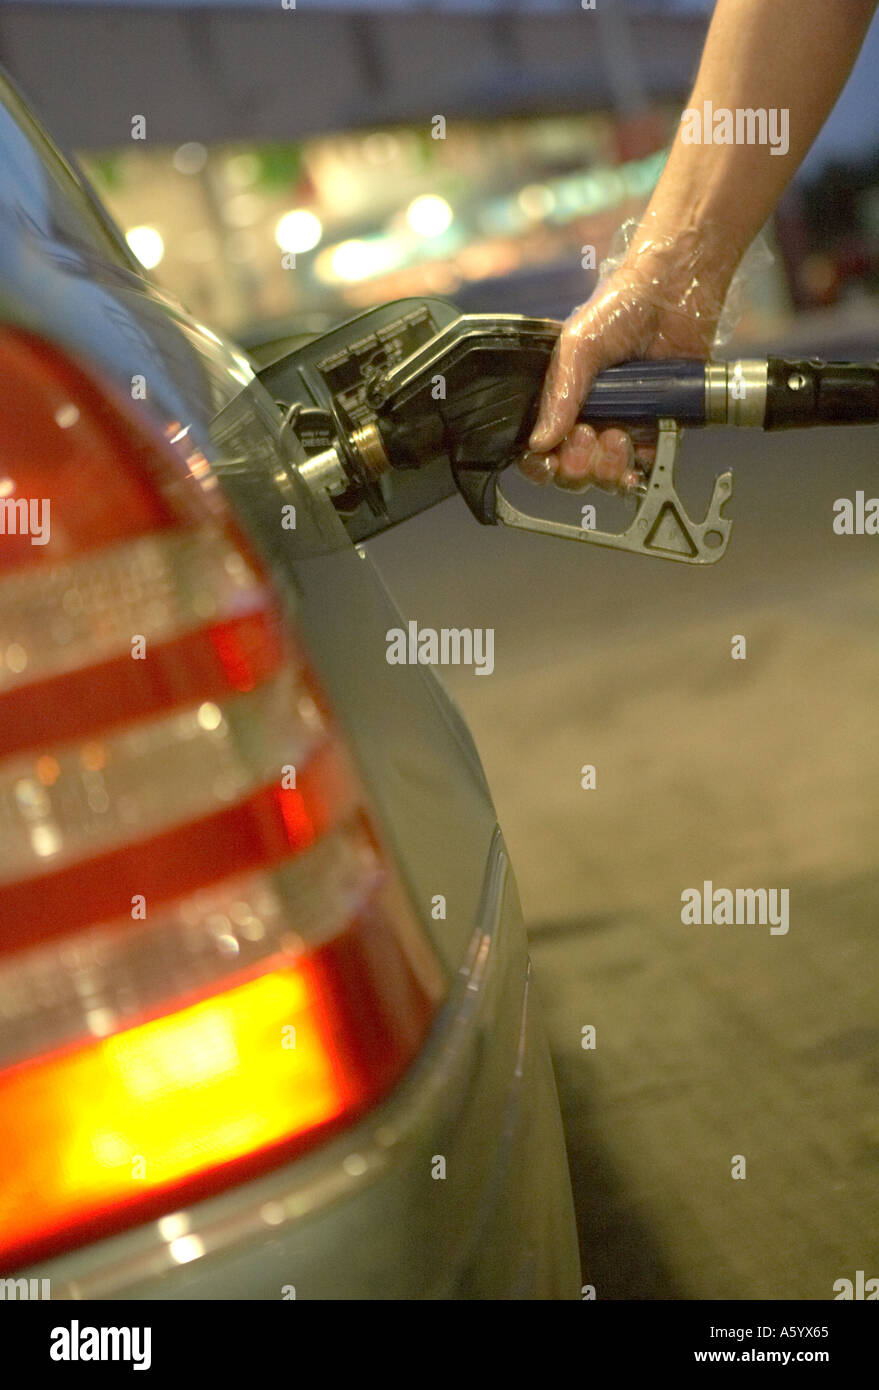 MALE HAND WEARING TRANSPARENT PLASTIC GLOVE WHILE FILLING CAR FUEL TANK WITH DIESEL - Stock Image